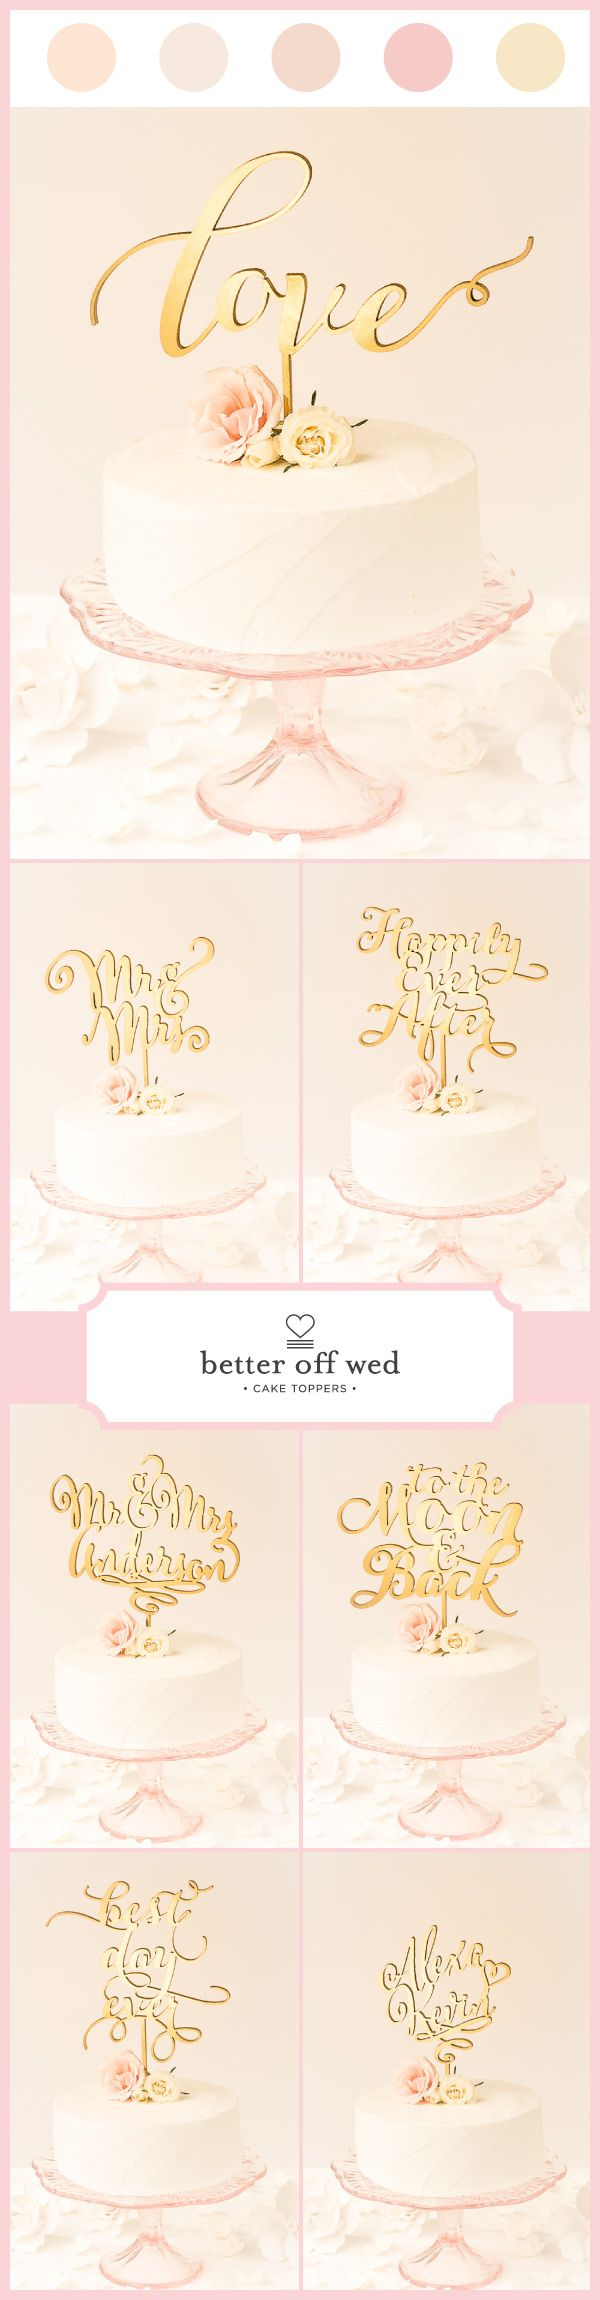 If you thought you didn't want a cake topper, @betteroffwed will change your mind! www.betteroffwed.co